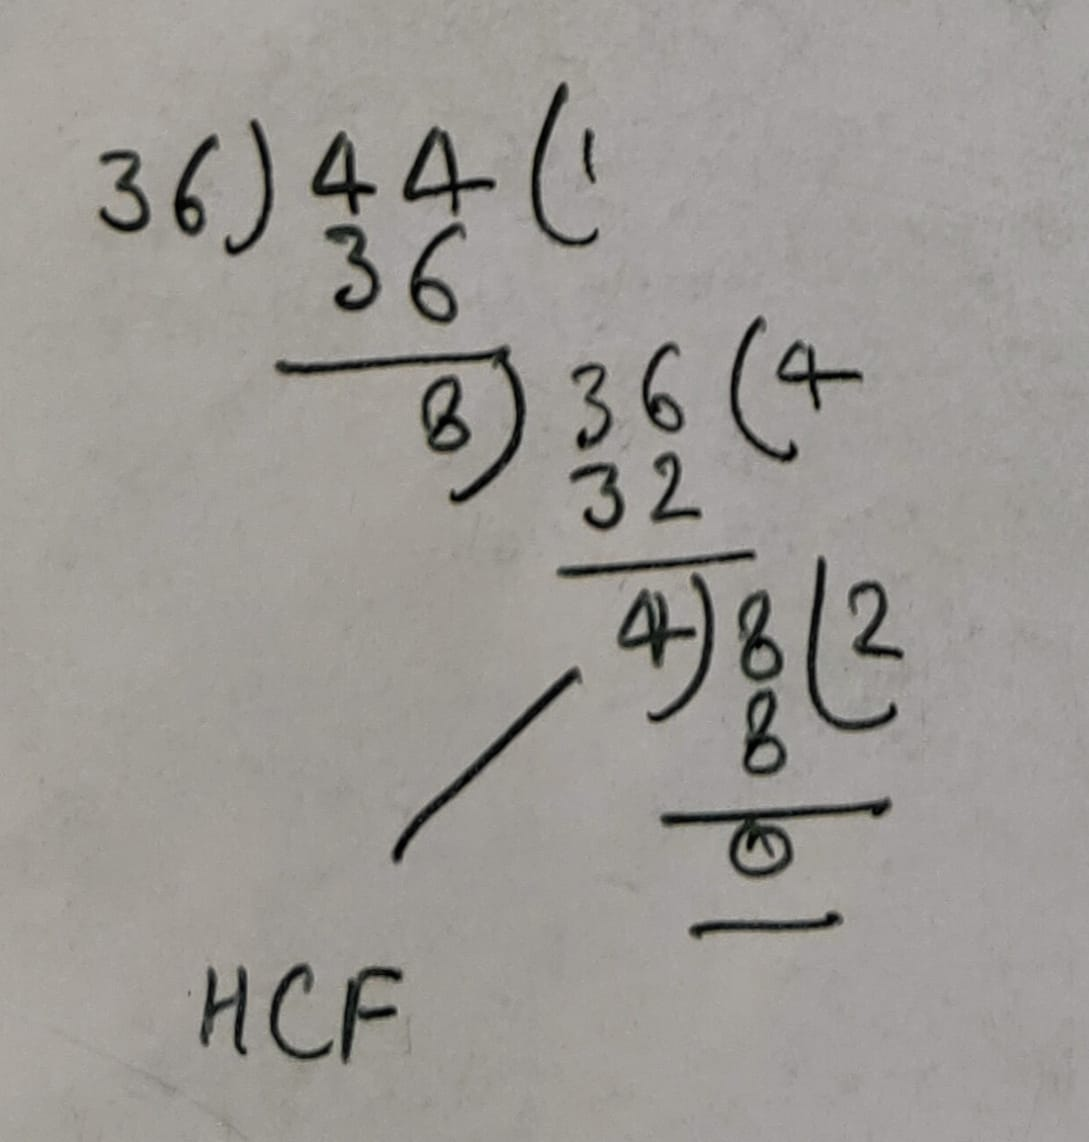 HCF of 24 36 And 44